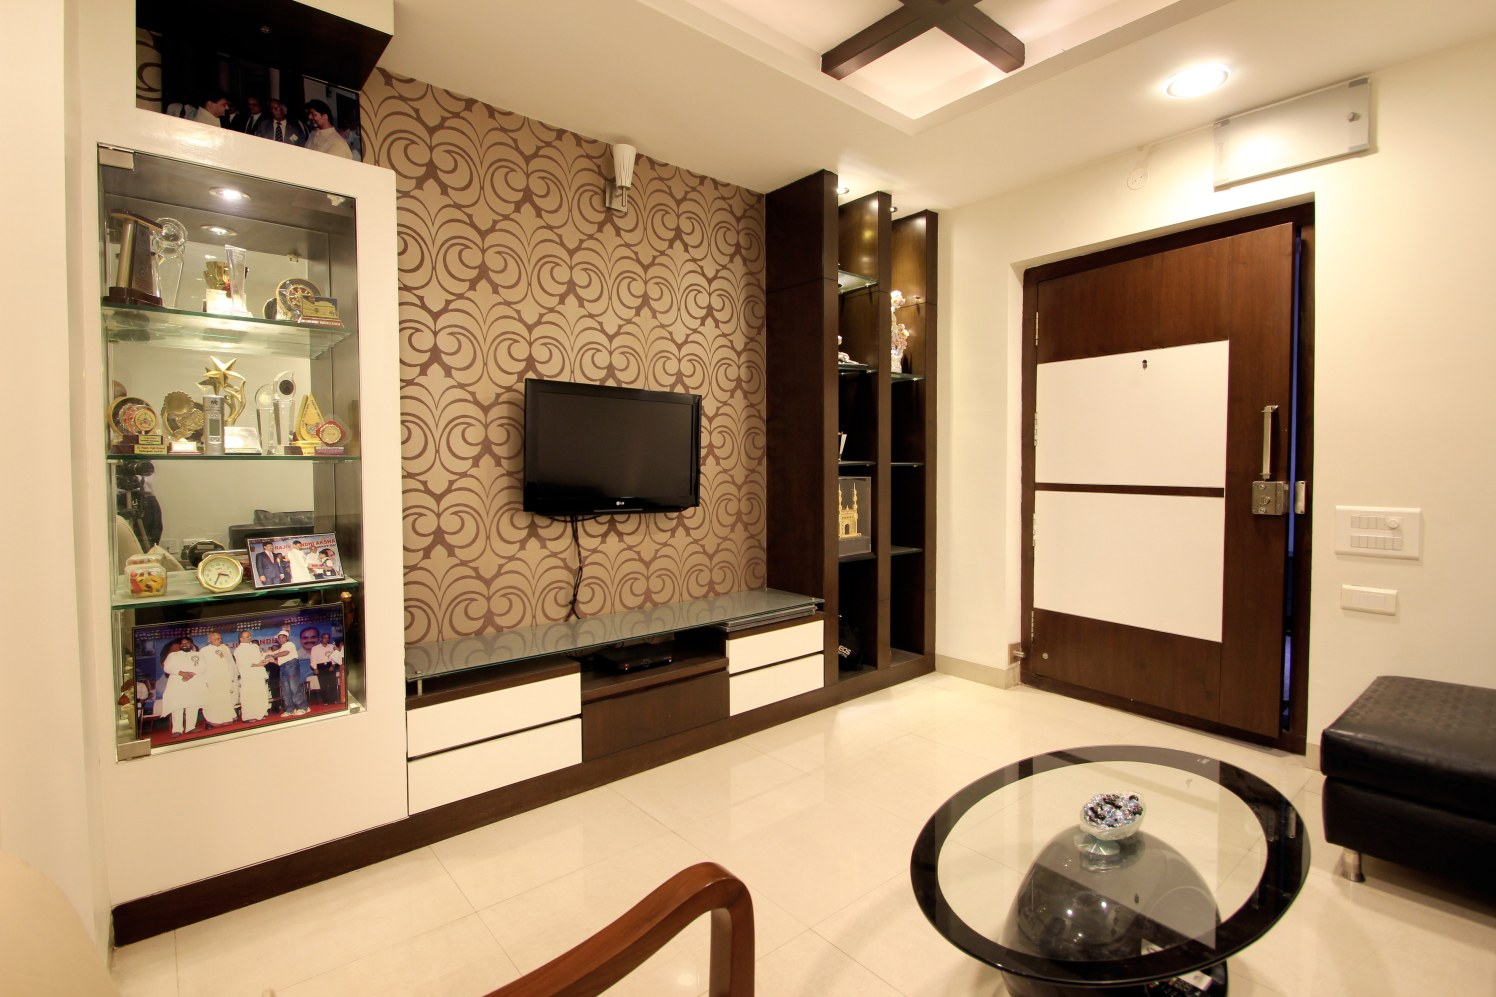 Living Room With TV Unit And Wall Art by Nandigam Harish Living-room Modern | Interior Design Photos & Ideas